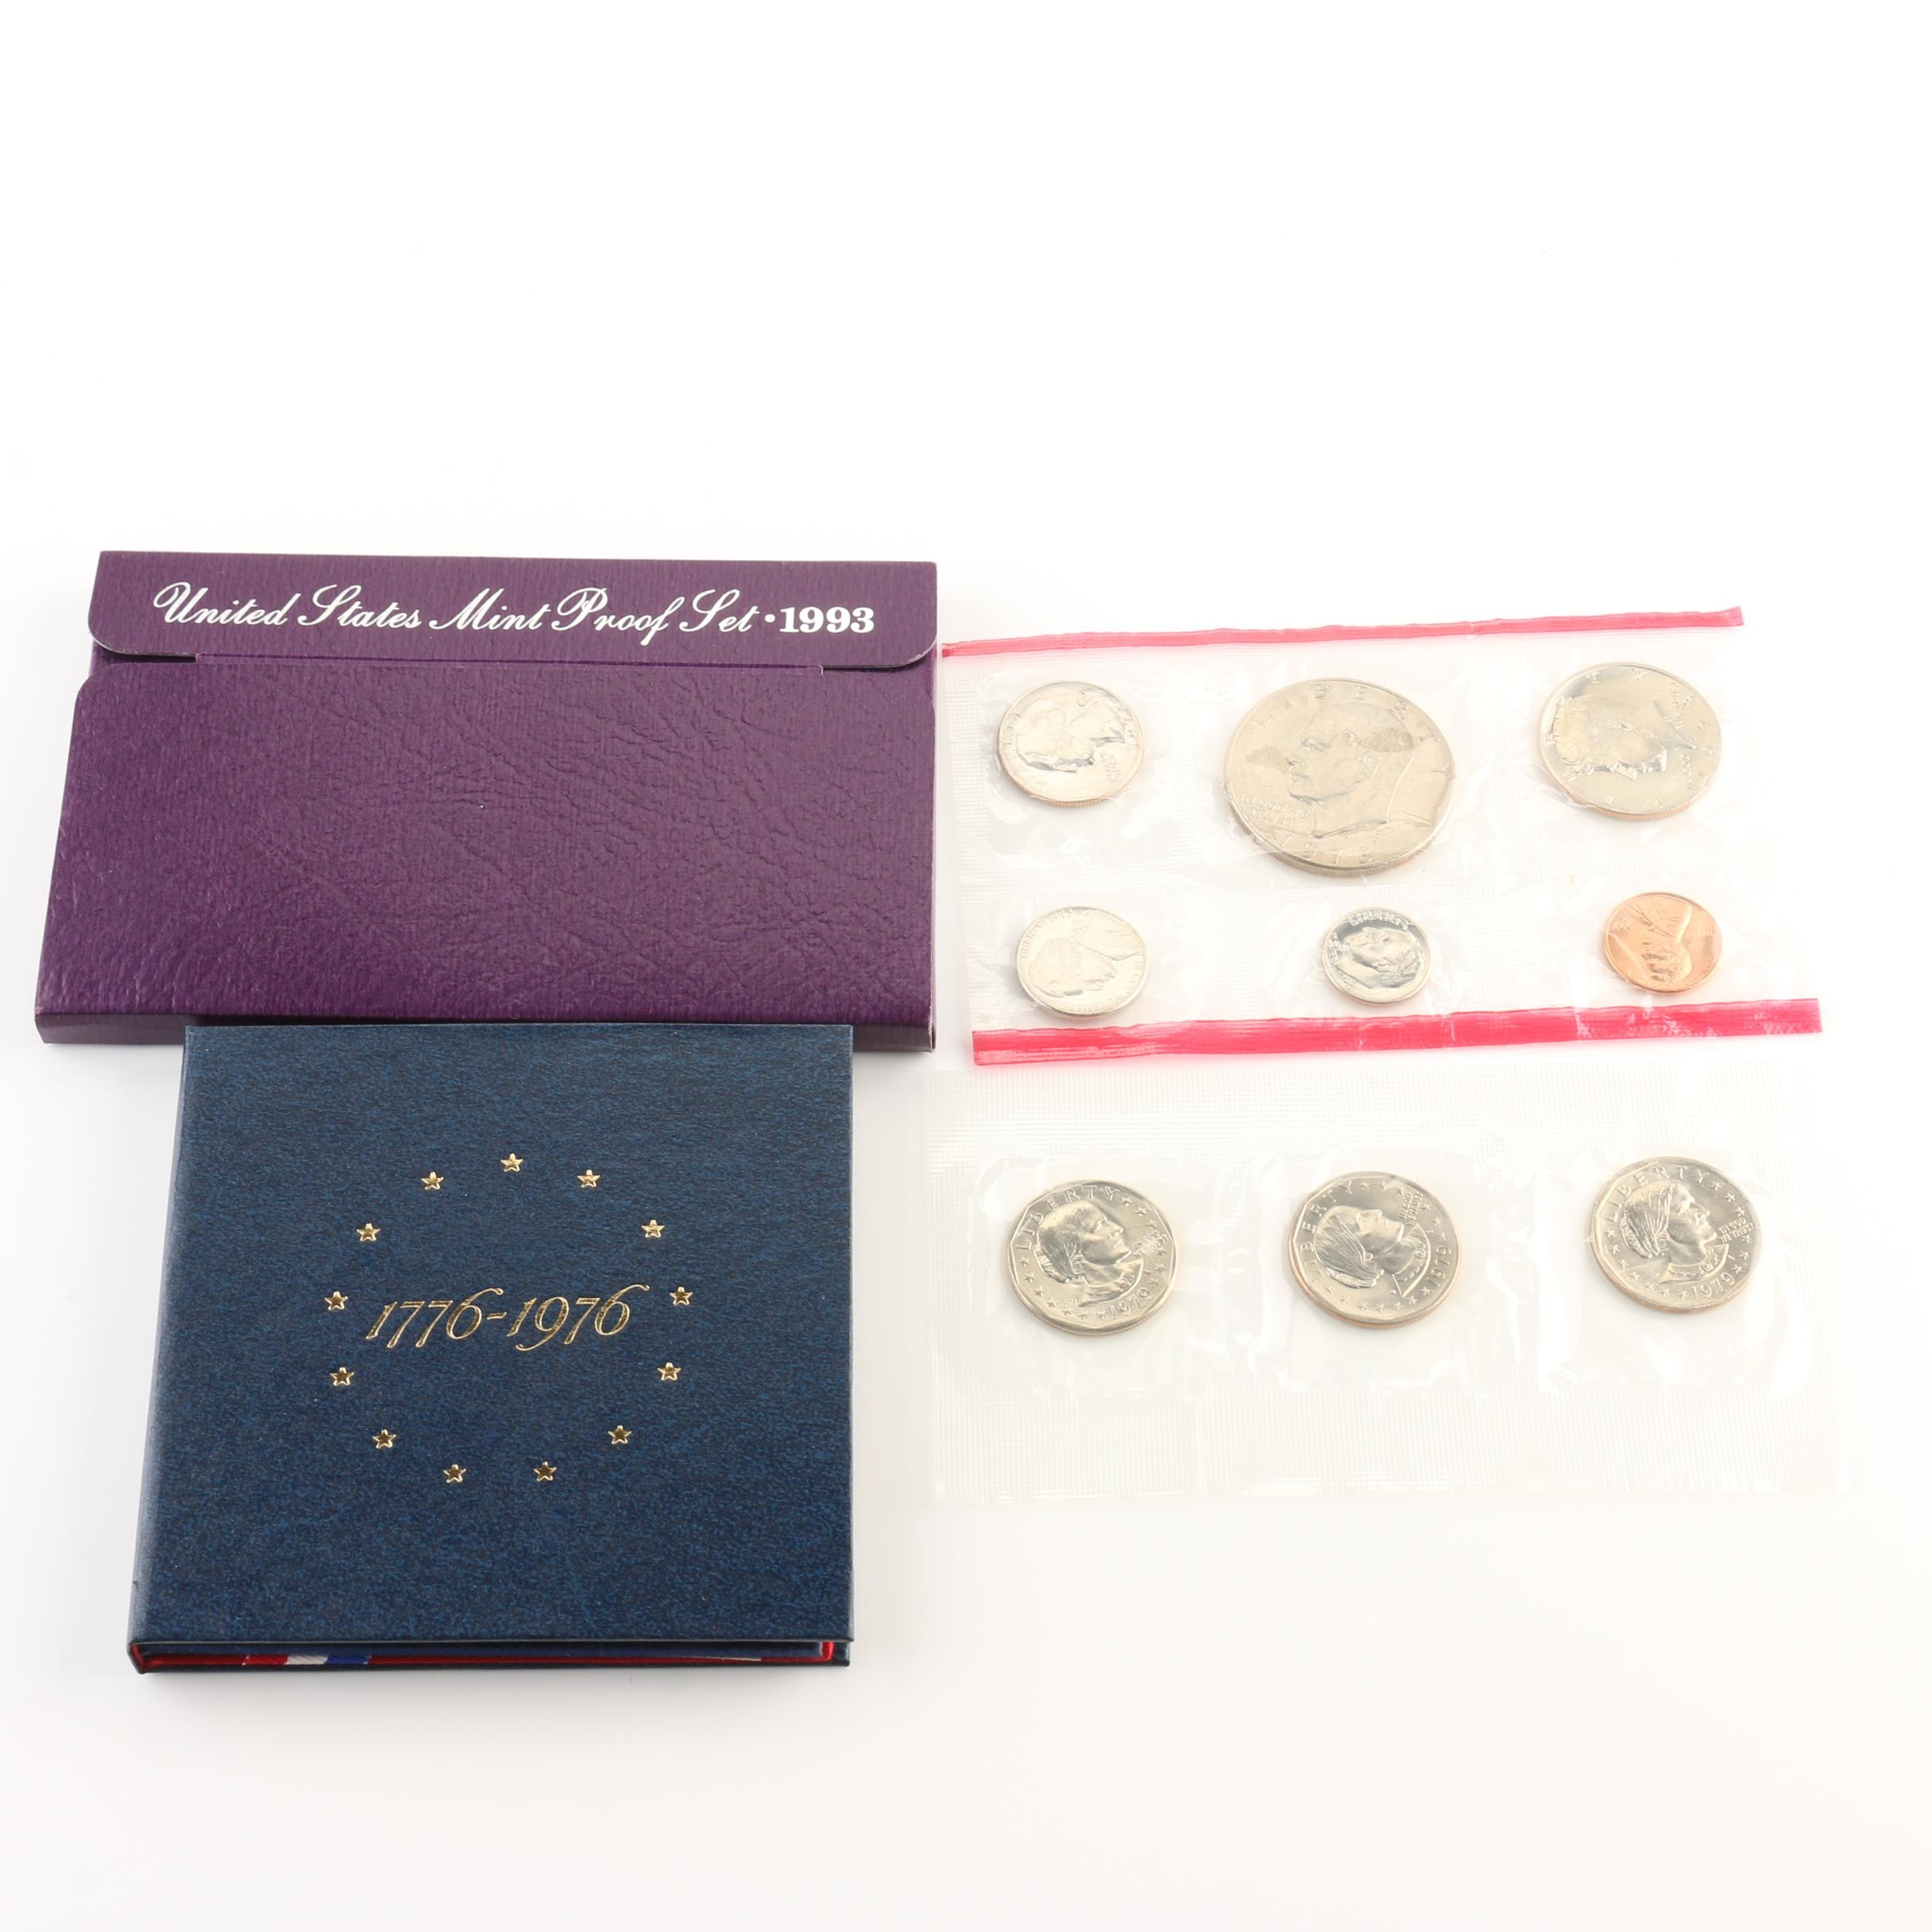 Collection of United States Mint Coin Sets